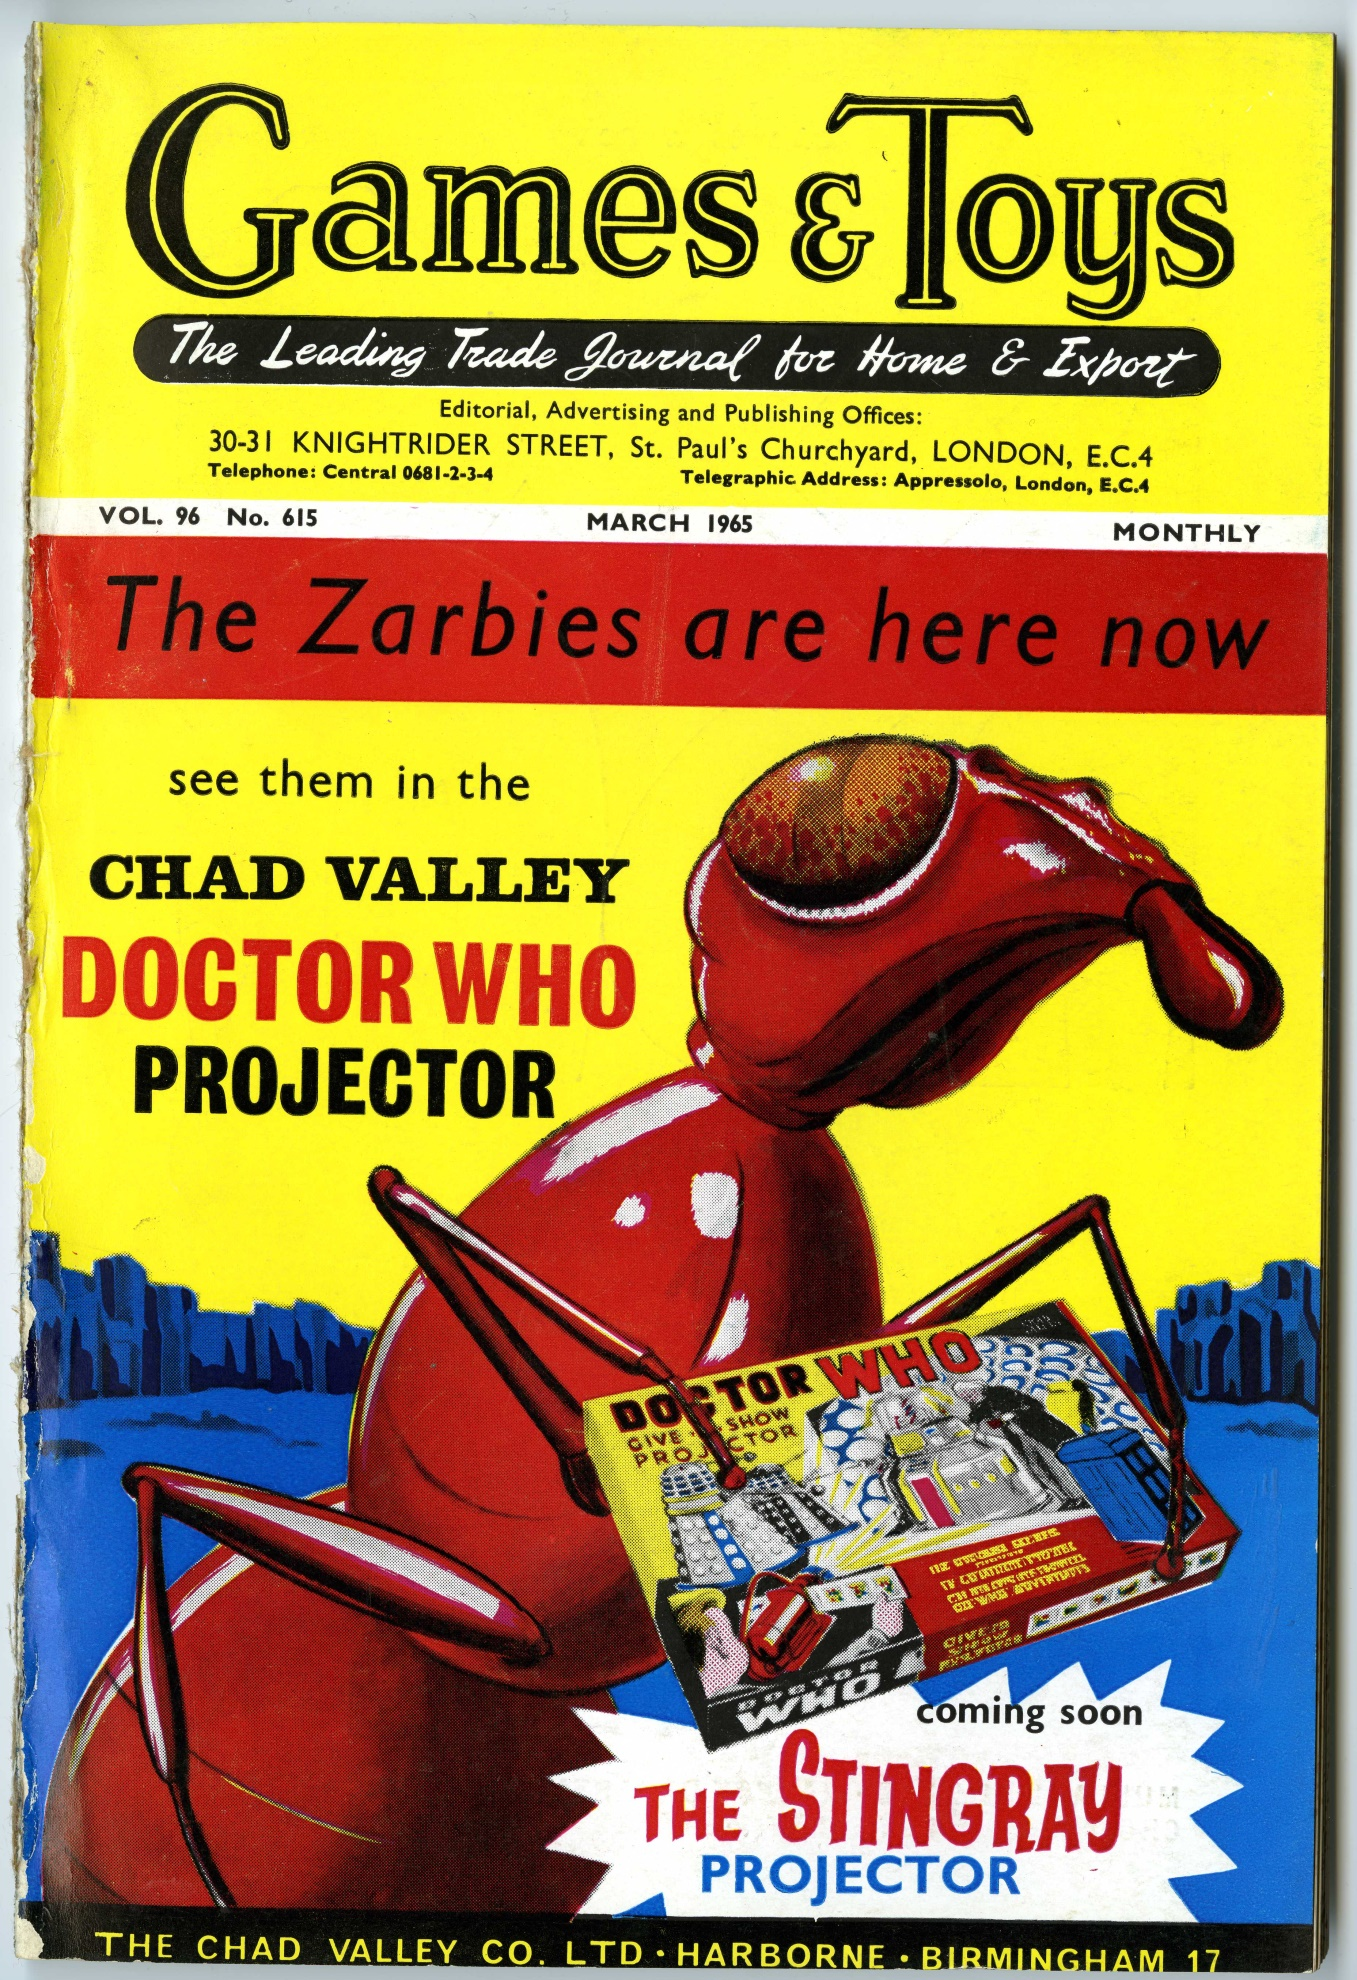 Games and Toys, March 1965 with cover ad. for the Chad Valley Doctor Who Give-A-Show Projector